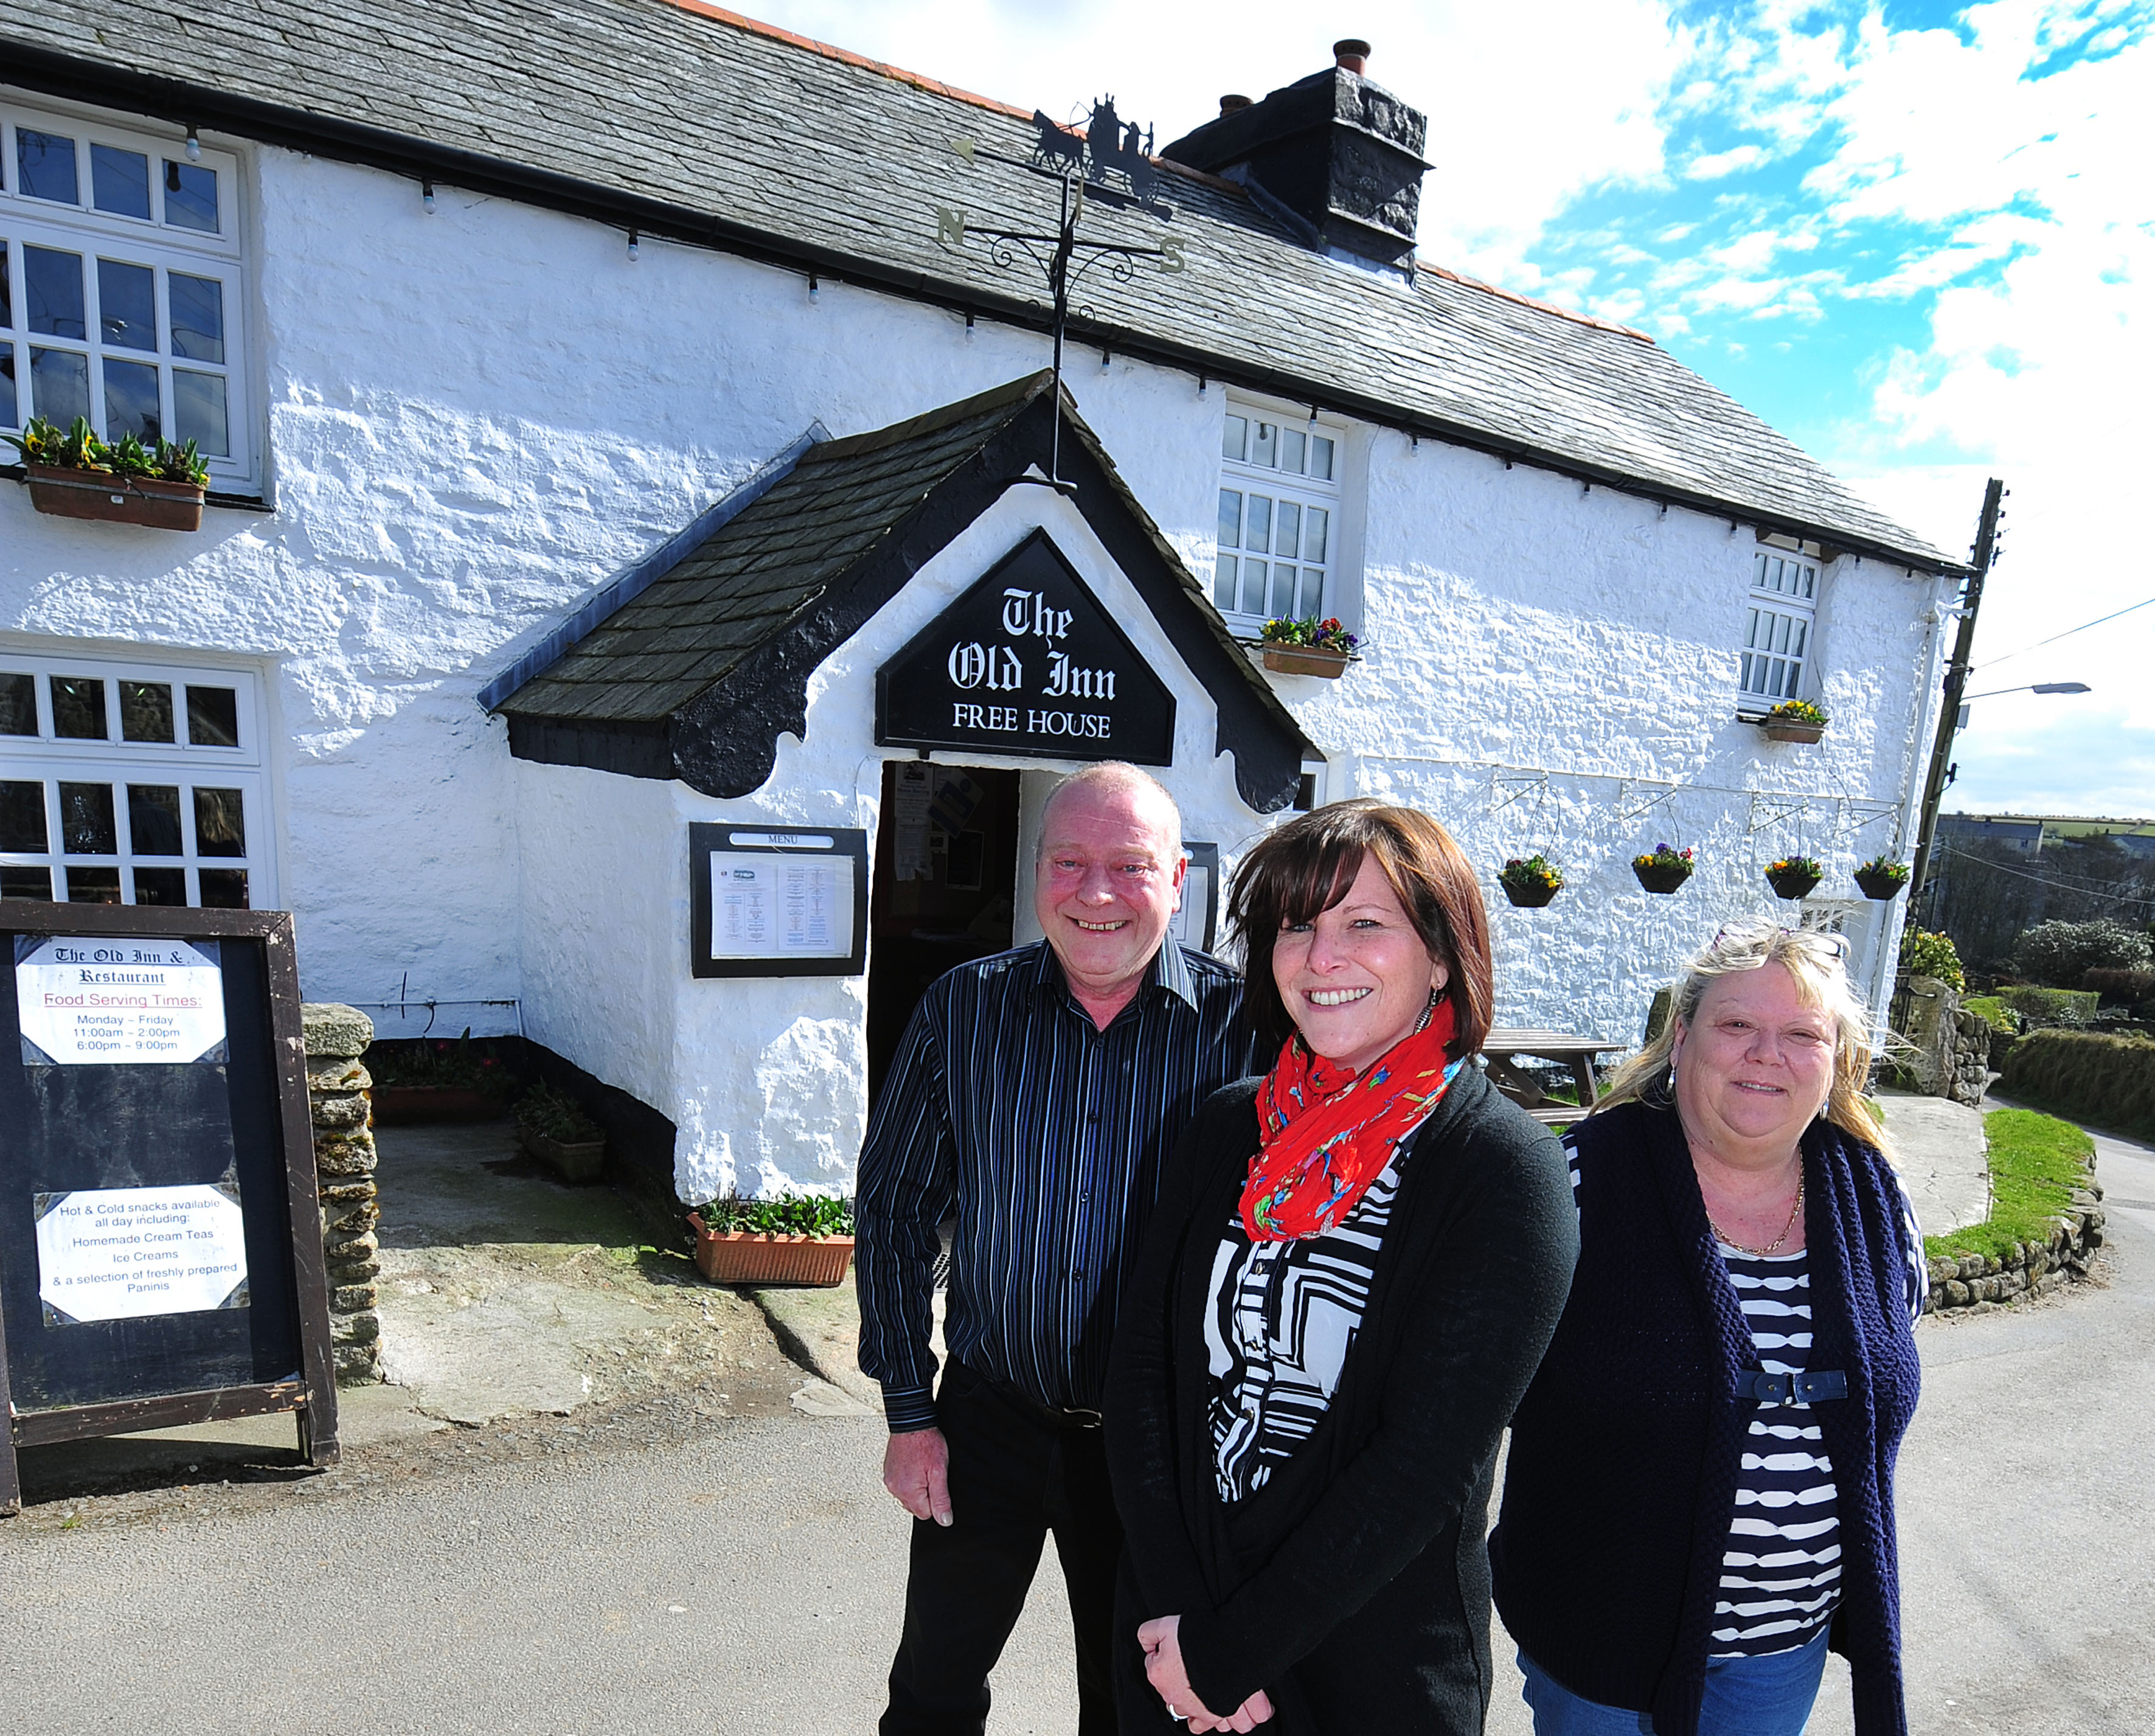 Worldwide Financial Planning's Rebecca Bendle (centre) with the Old Inn's new landlords, Melvyn and Christine Hooper